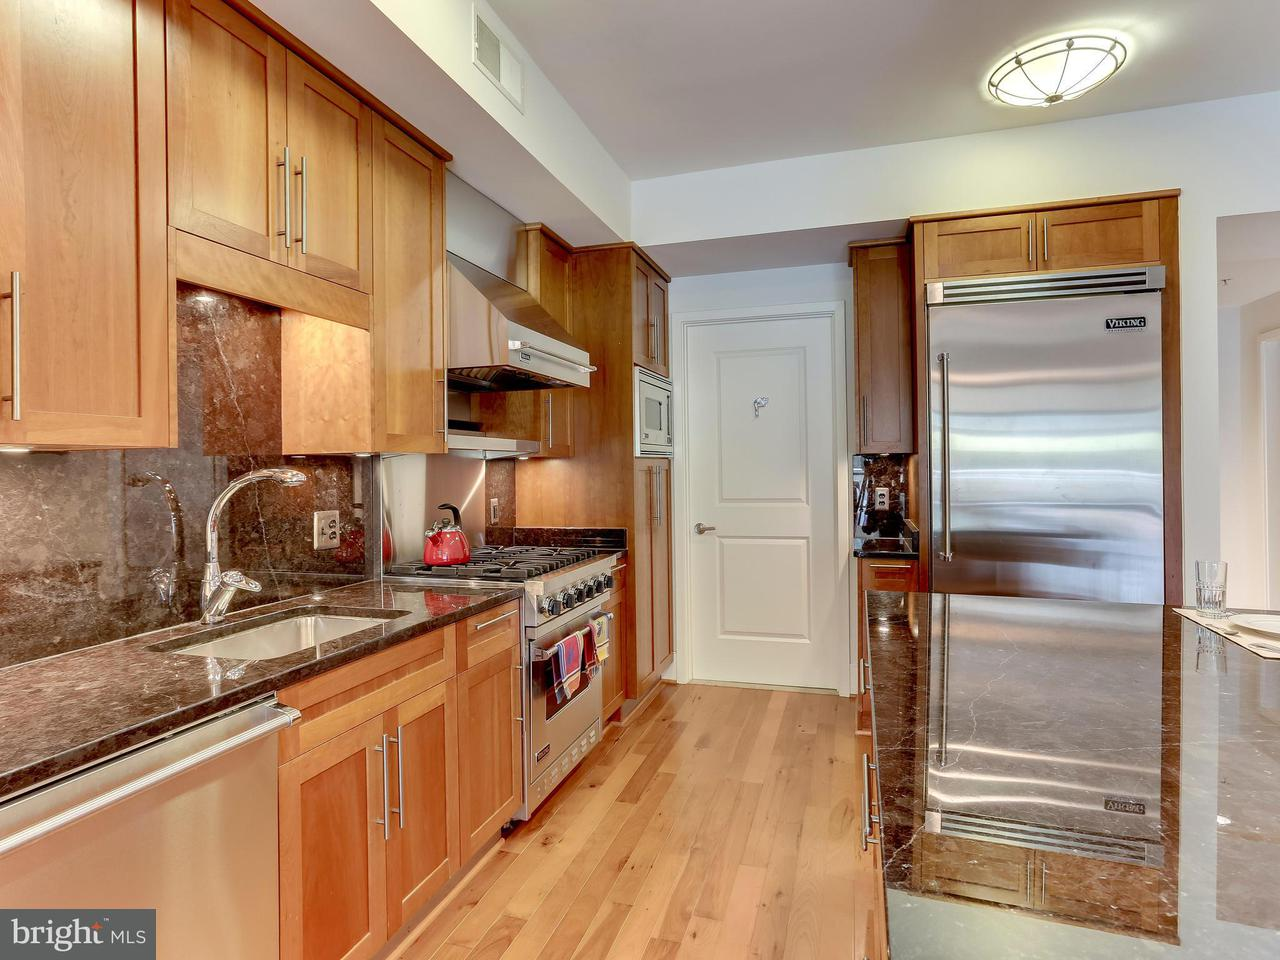 Additional photo for property listing at 4301 Military Rd Nw #109 4301 Military Rd Nw #109 Washington, コロンビア特別区 20015 アメリカ合衆国